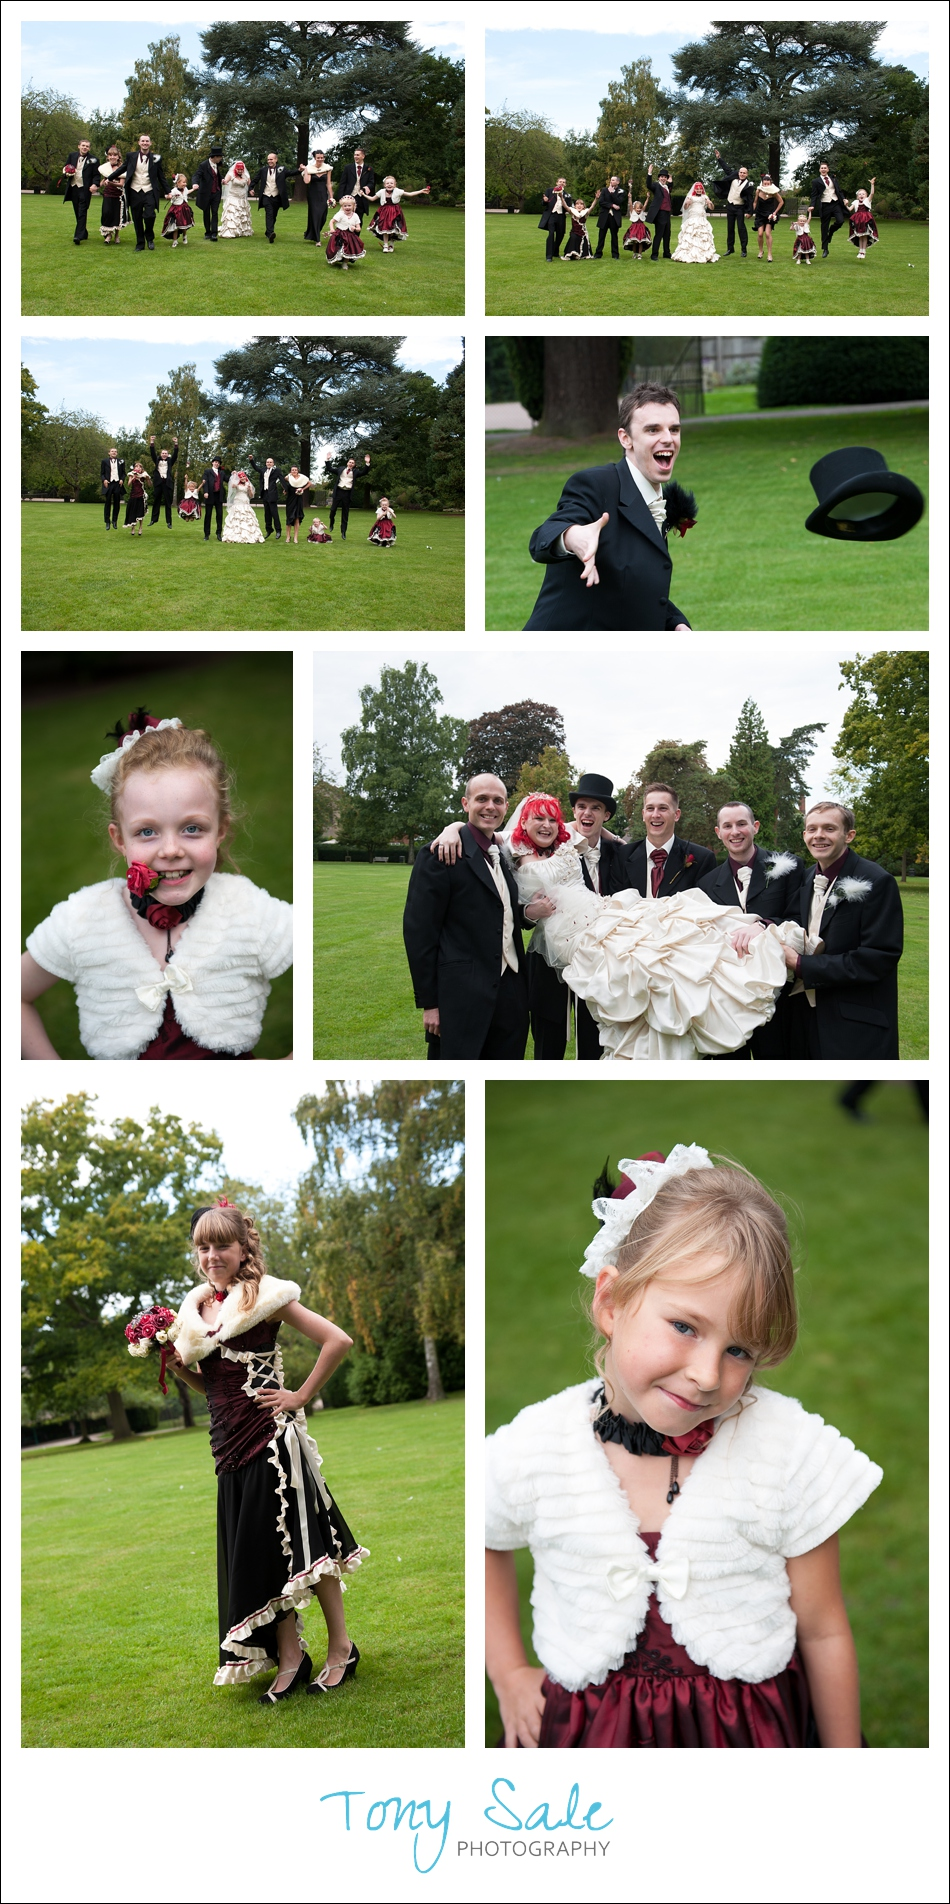 Wedding photography in Braintree - Fun with the bridal party